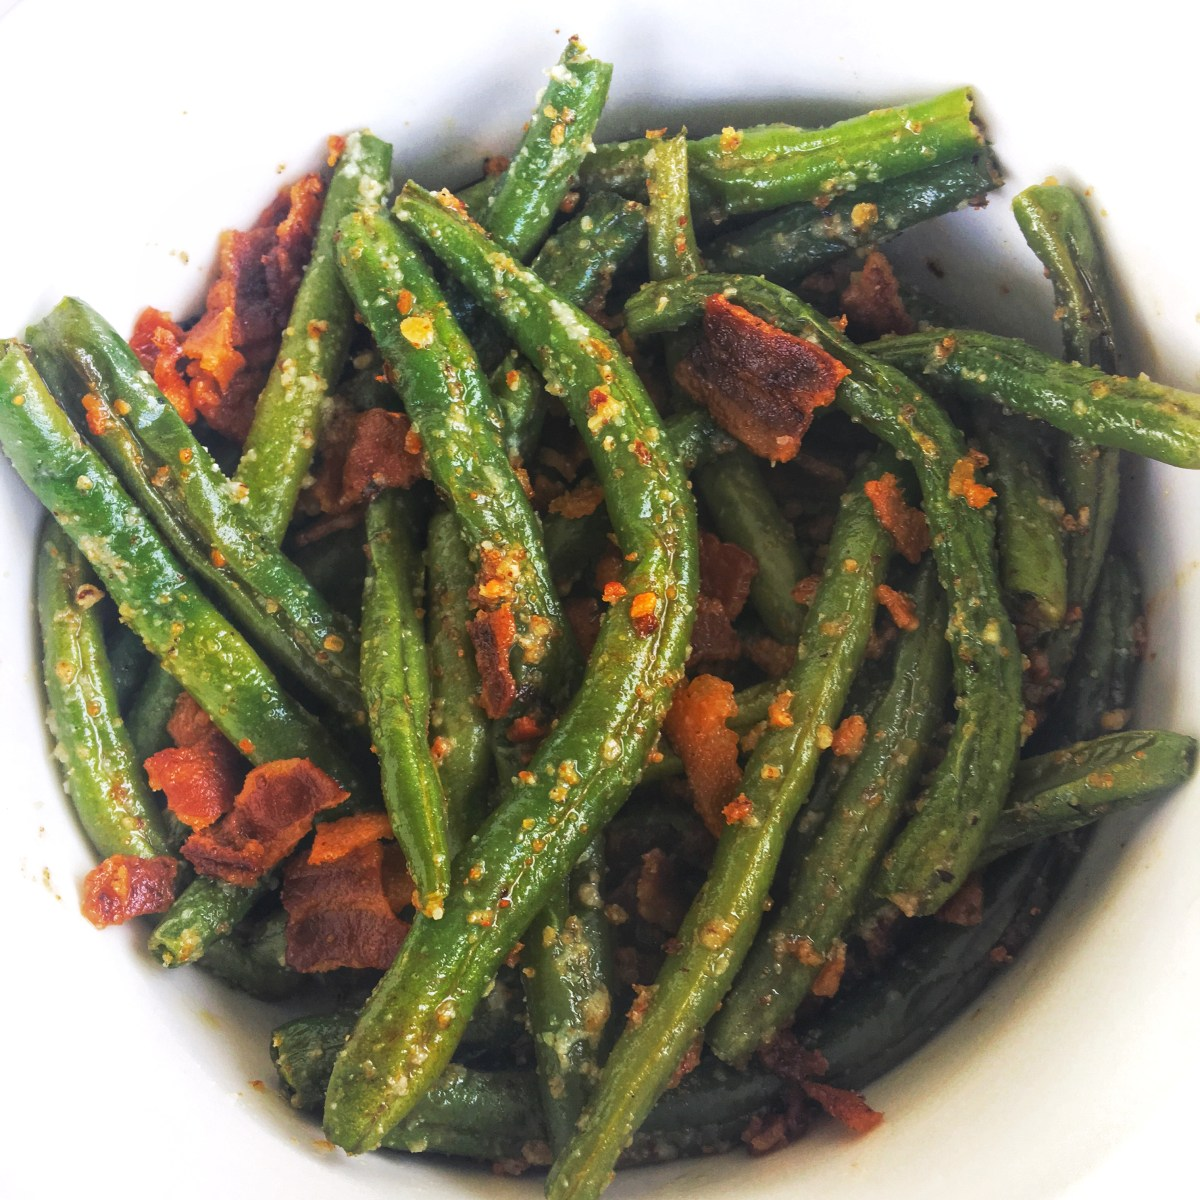 Bacon Garlic Parmesan Green Beans